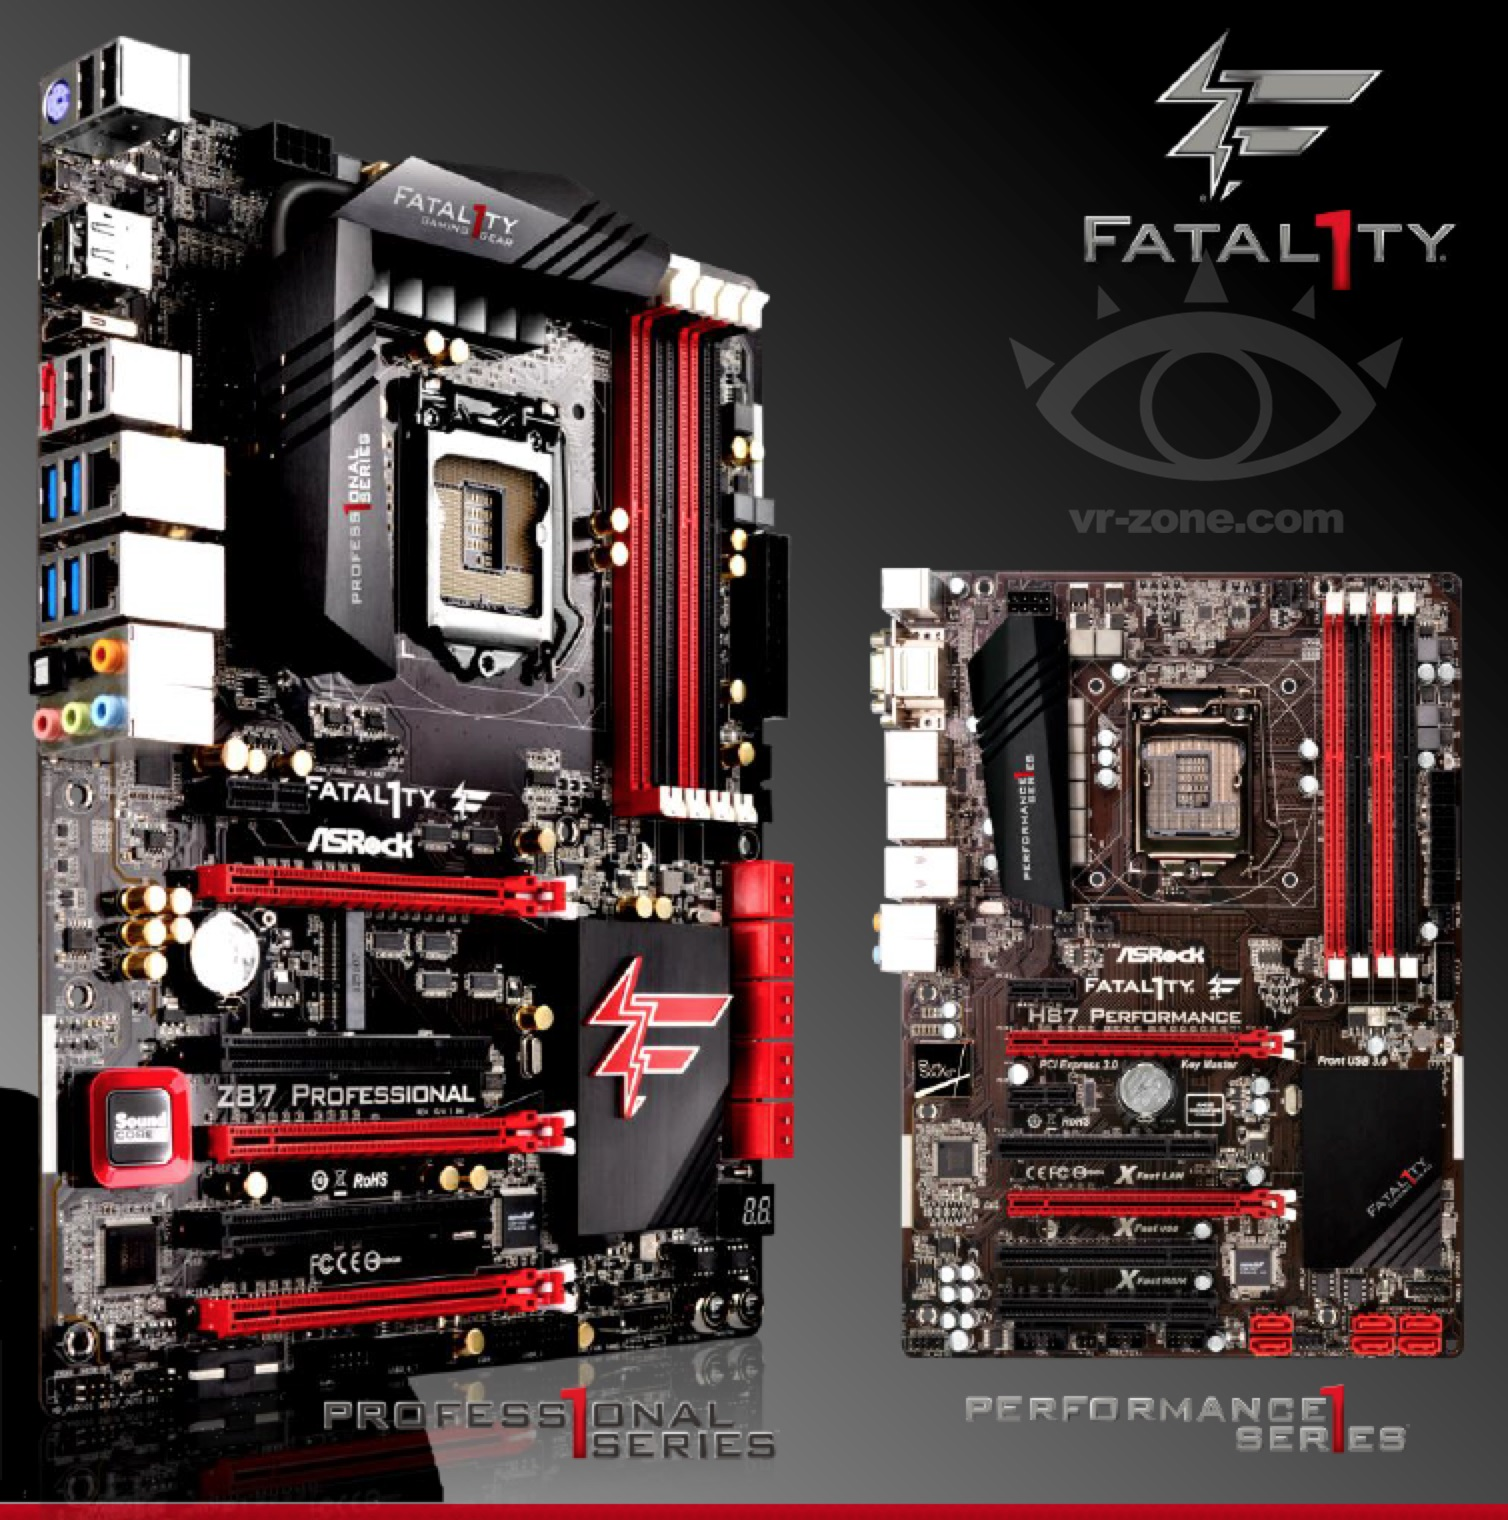 ASRock z87 fatal1ty professional h87 performance